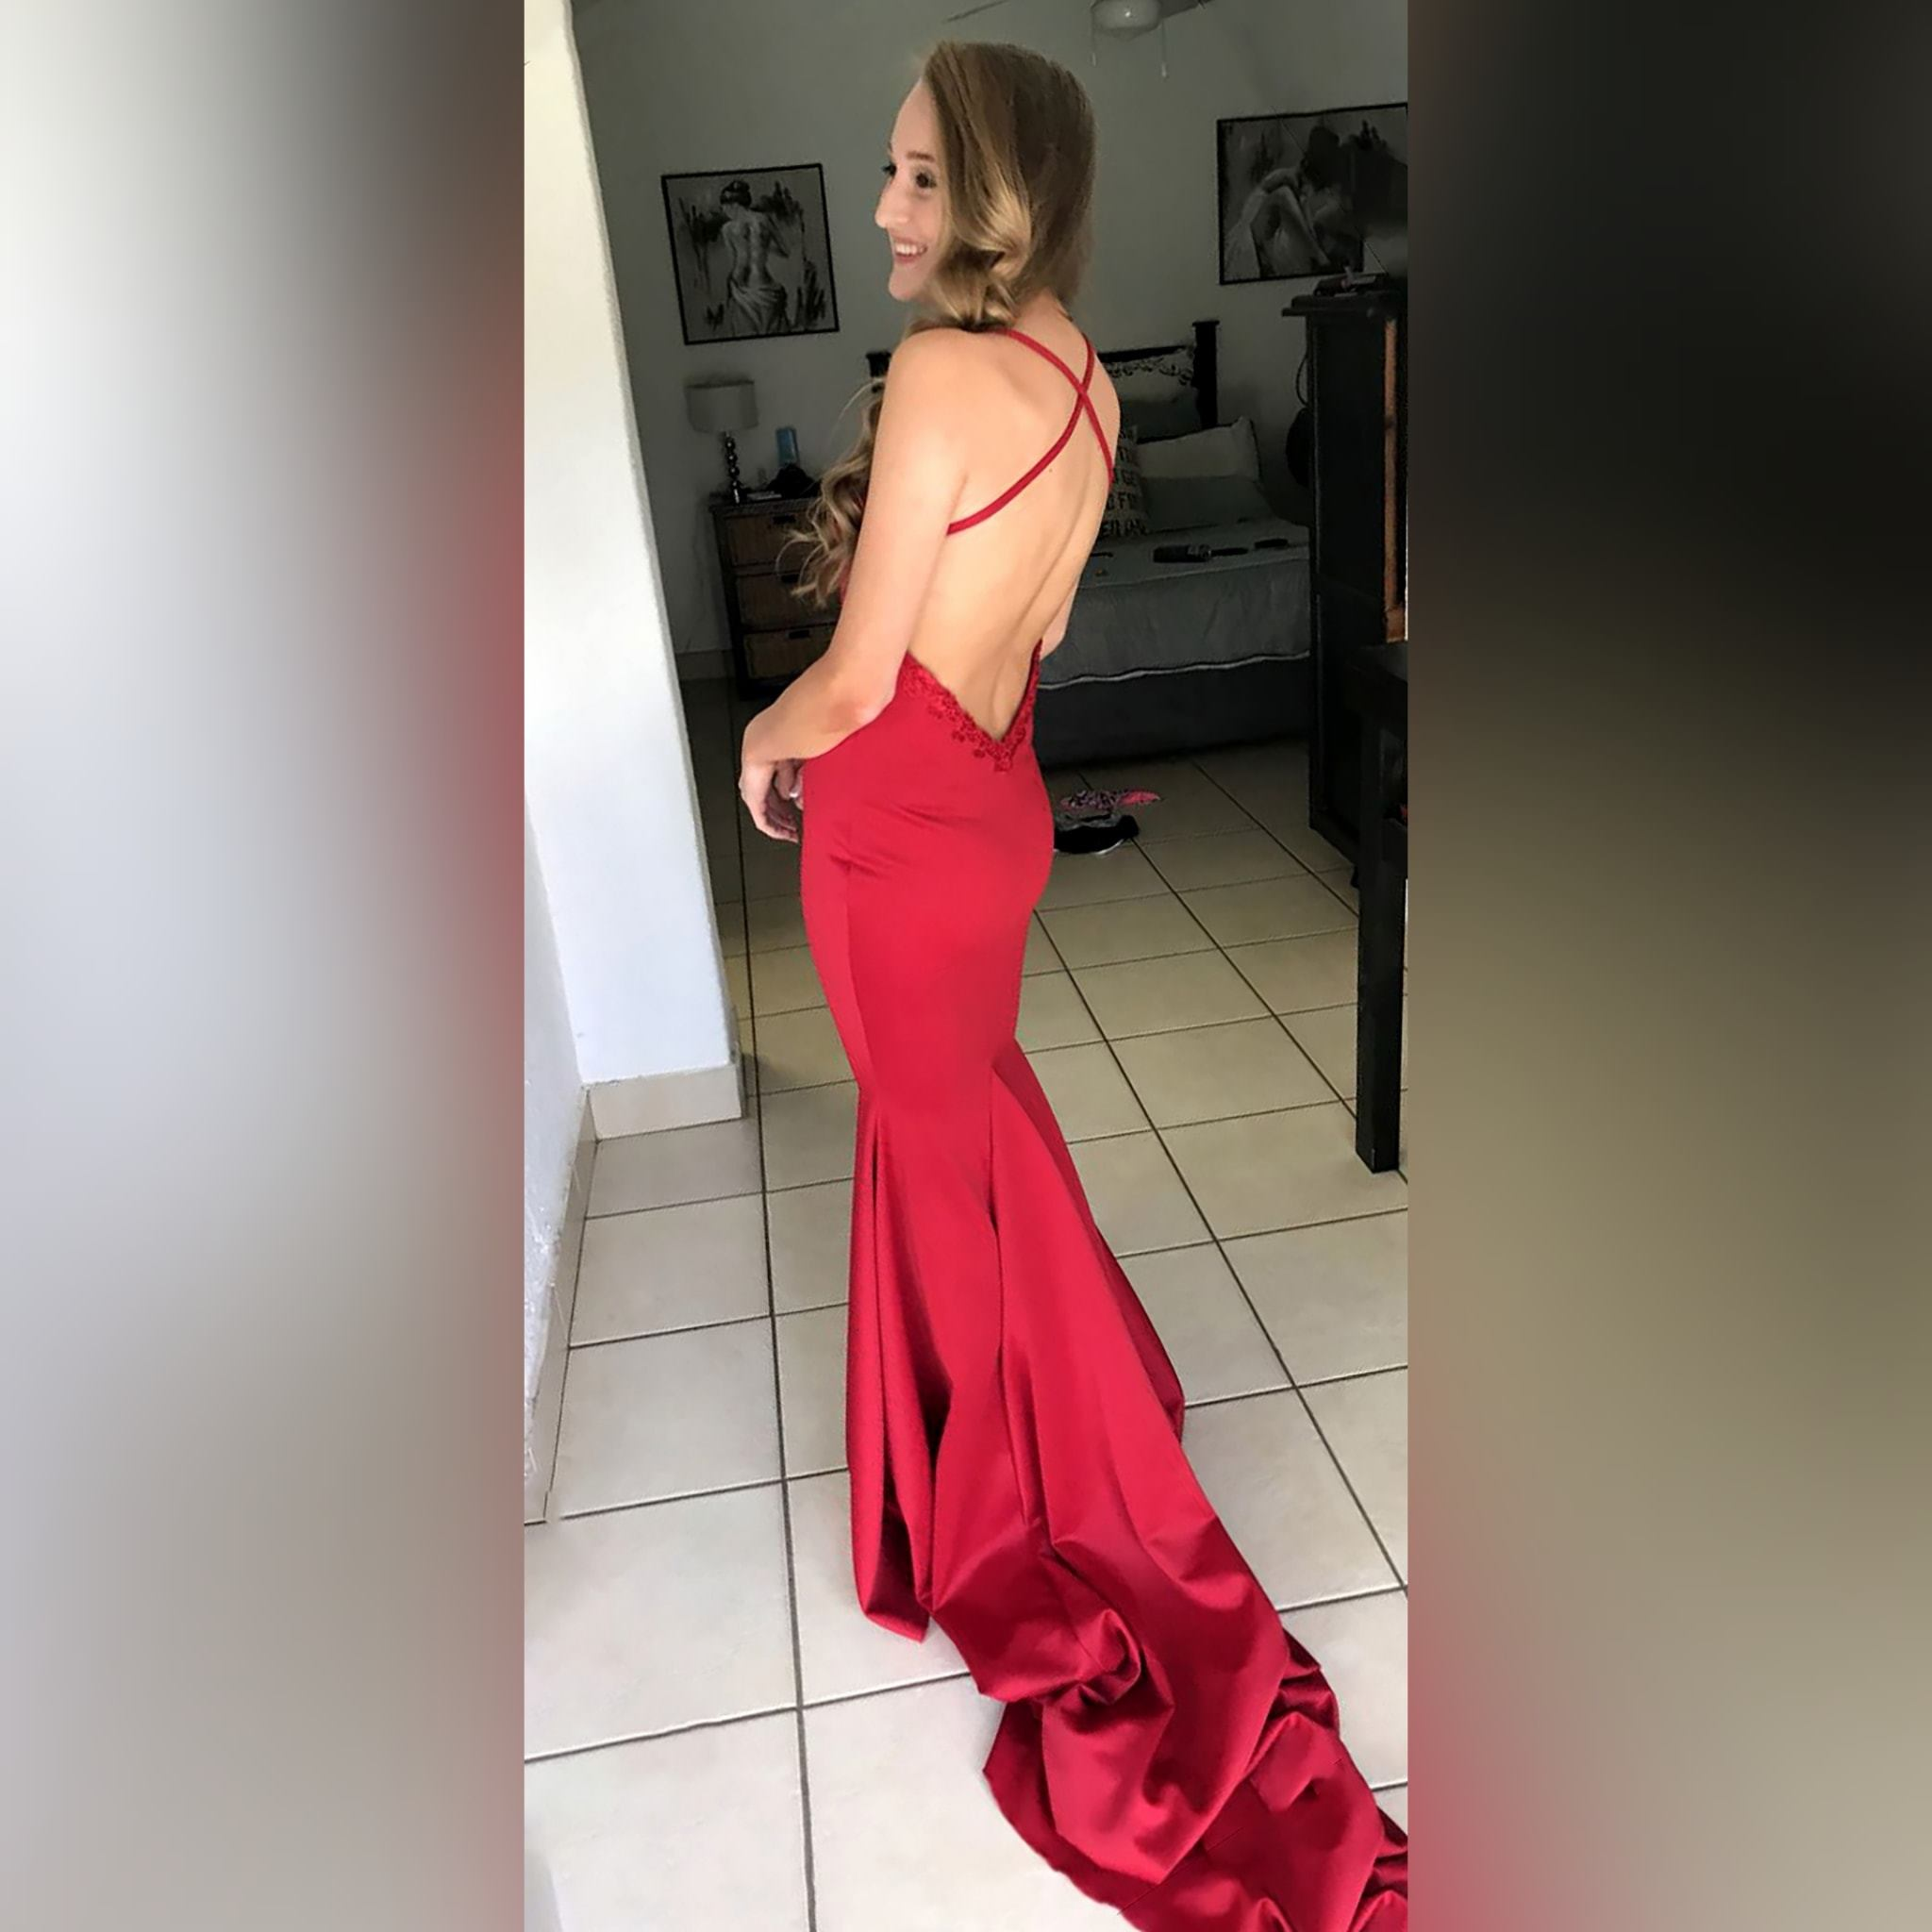 Red soft mermaid prom dress with a v neckline 1 red soft mermaid prom dress with a v neckline, a low open back and thin crossed shoulder straps, with a train.